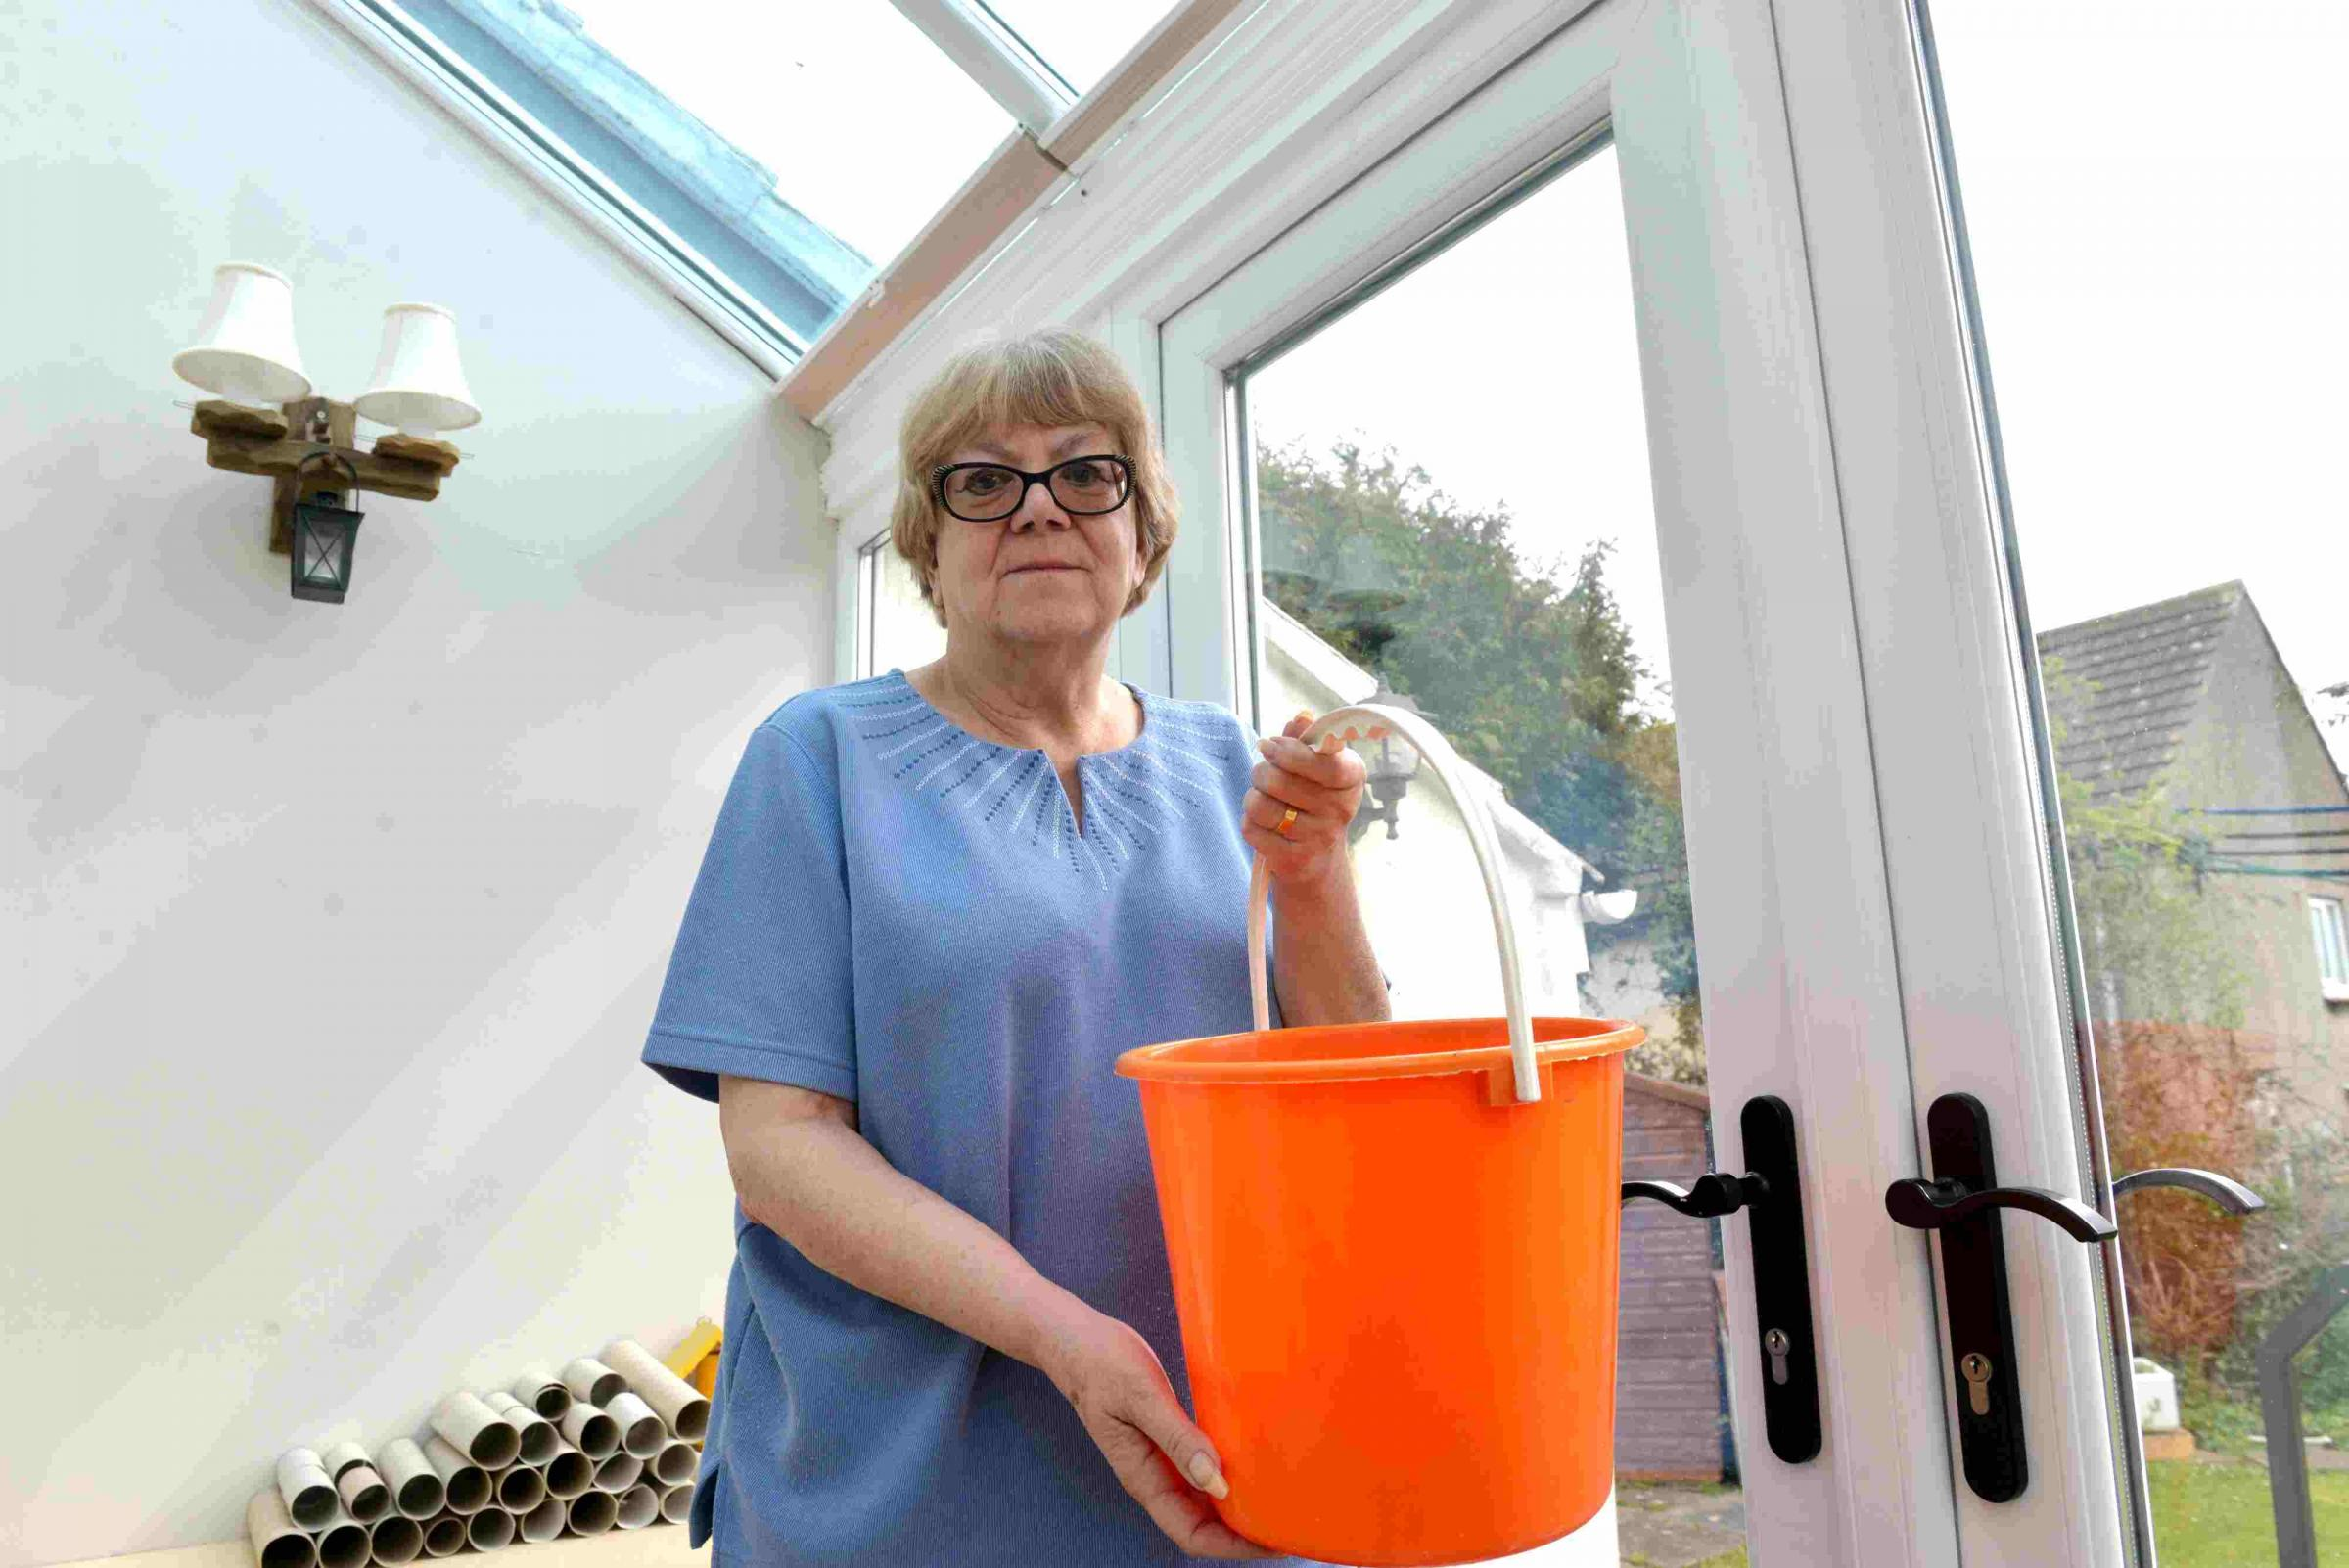 Jan Davies at her home in Chipping Sodbury in her leaking conservatory.